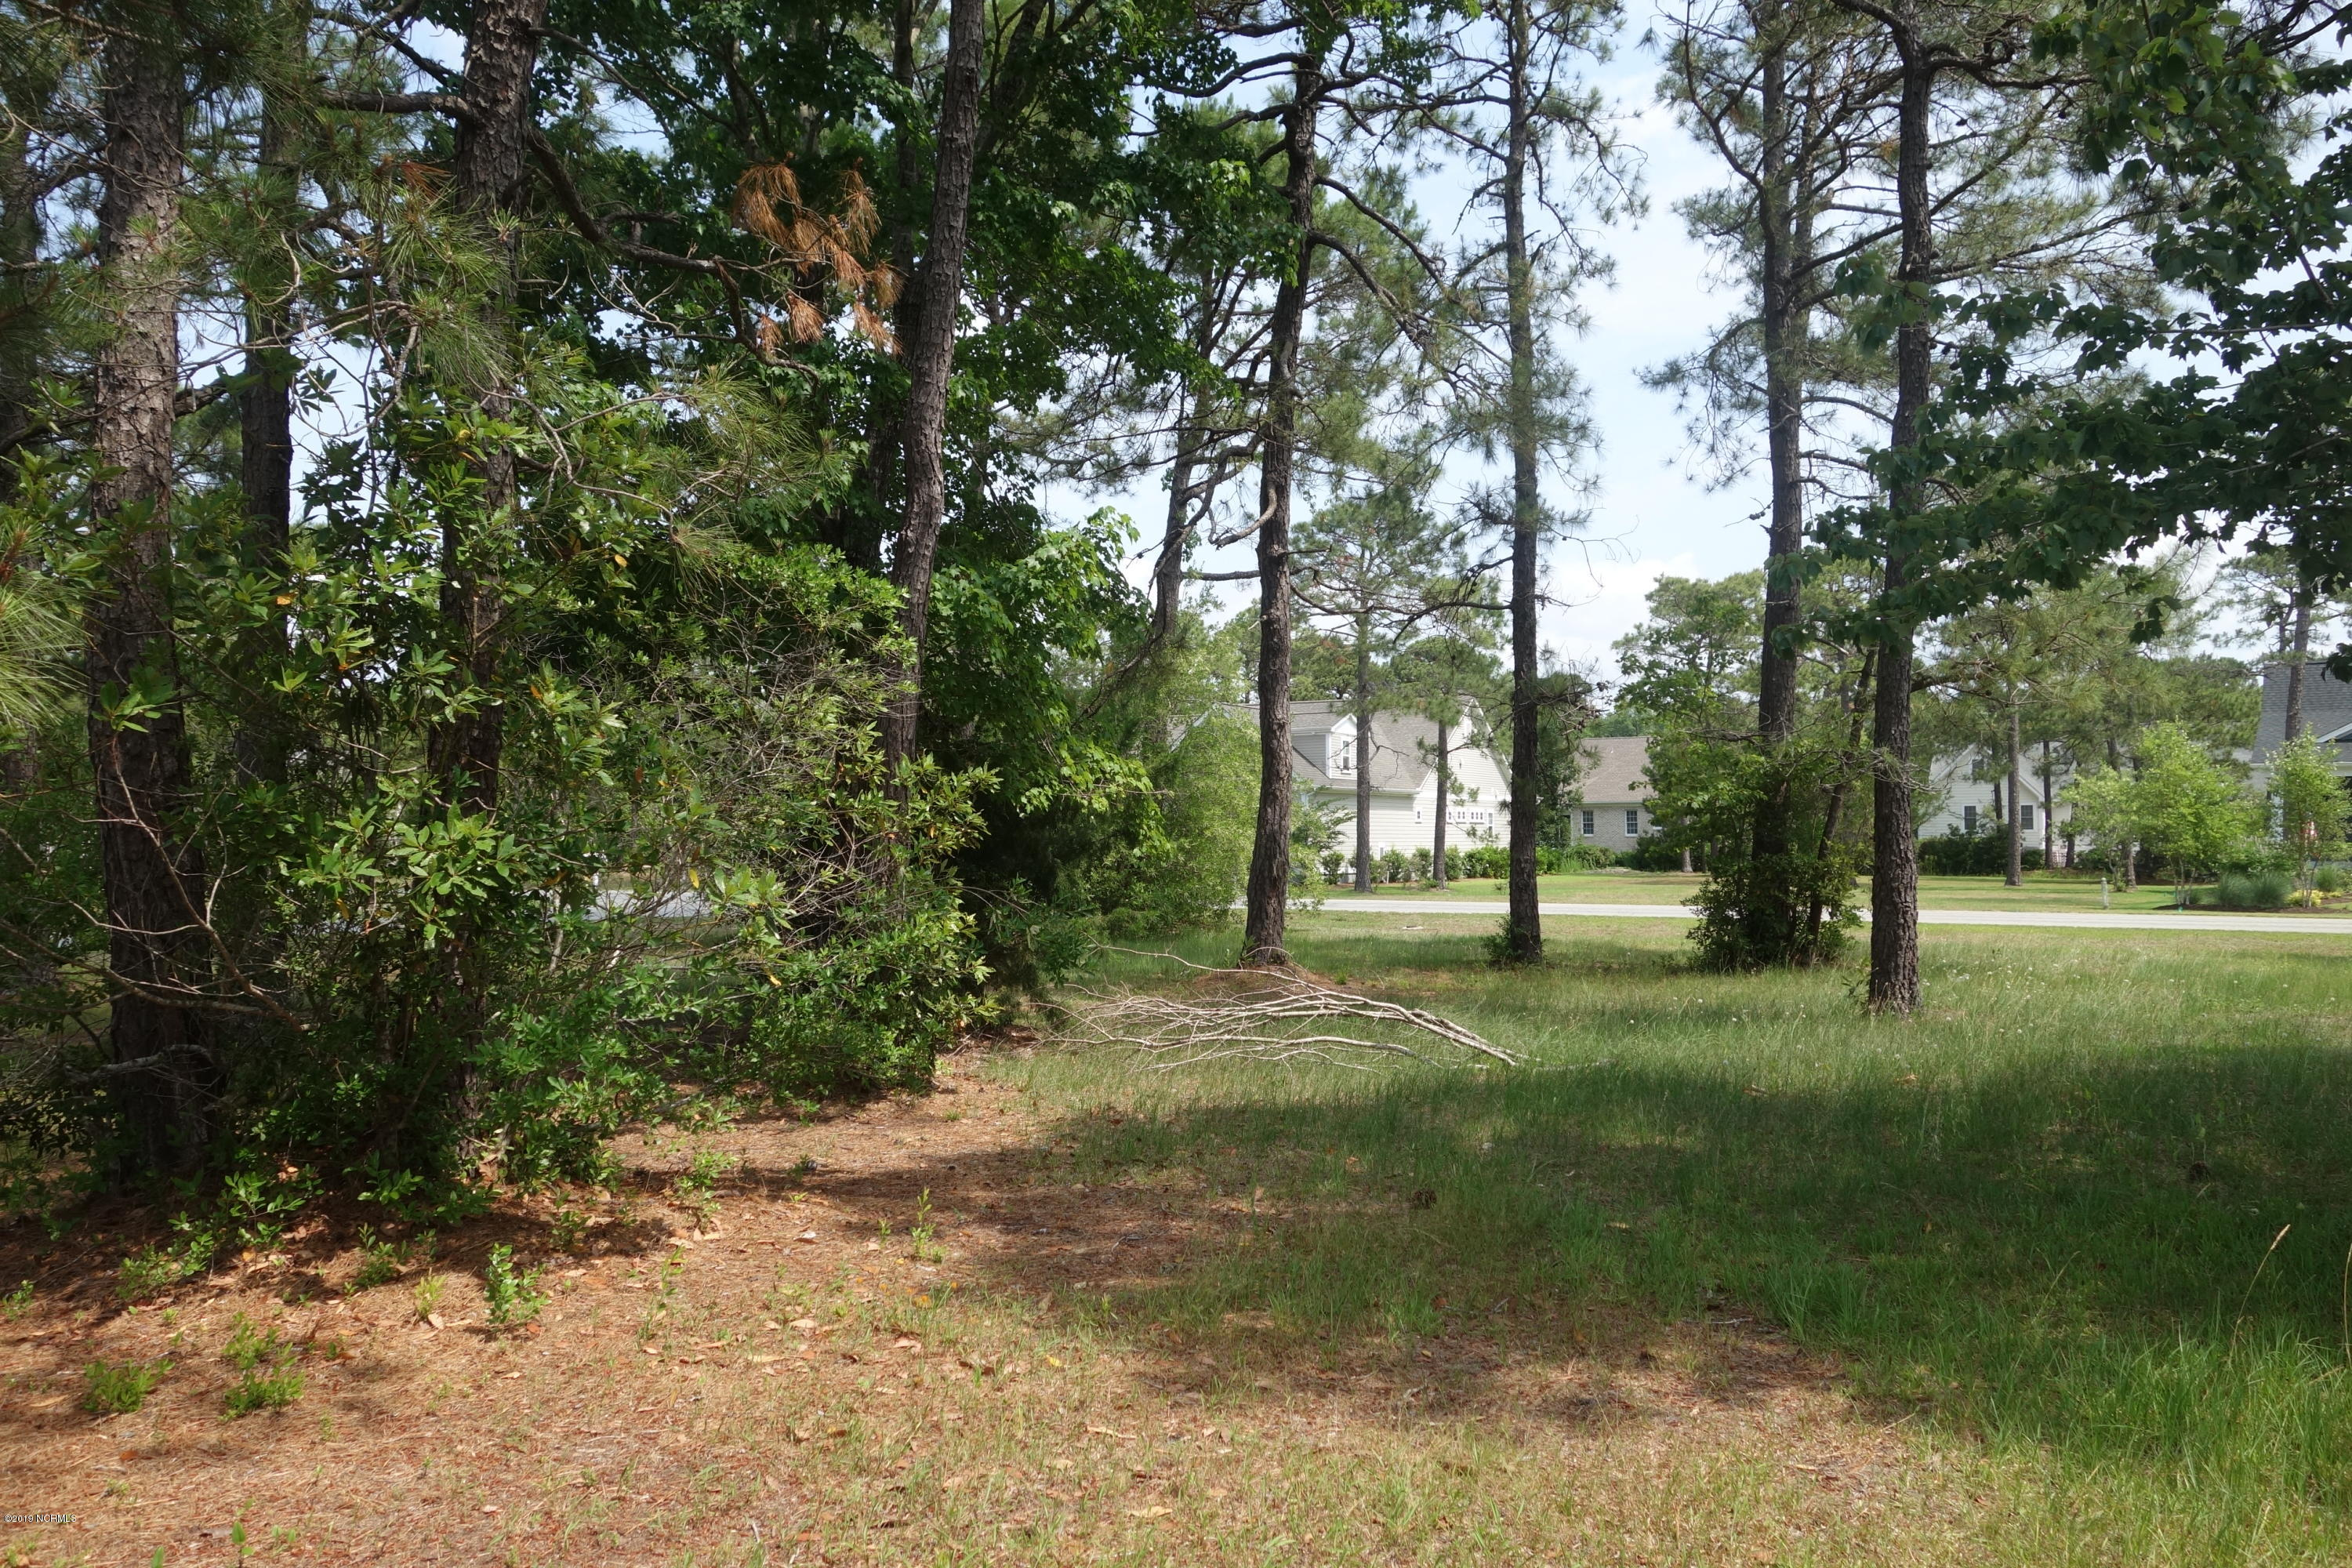 Lot 92 Crnr Of Moorings Way/Rose Hill, Southport, North Carolina 28461, ,Residential land,For sale,Crnr Of Moorings Way/Rose Hill,100169526